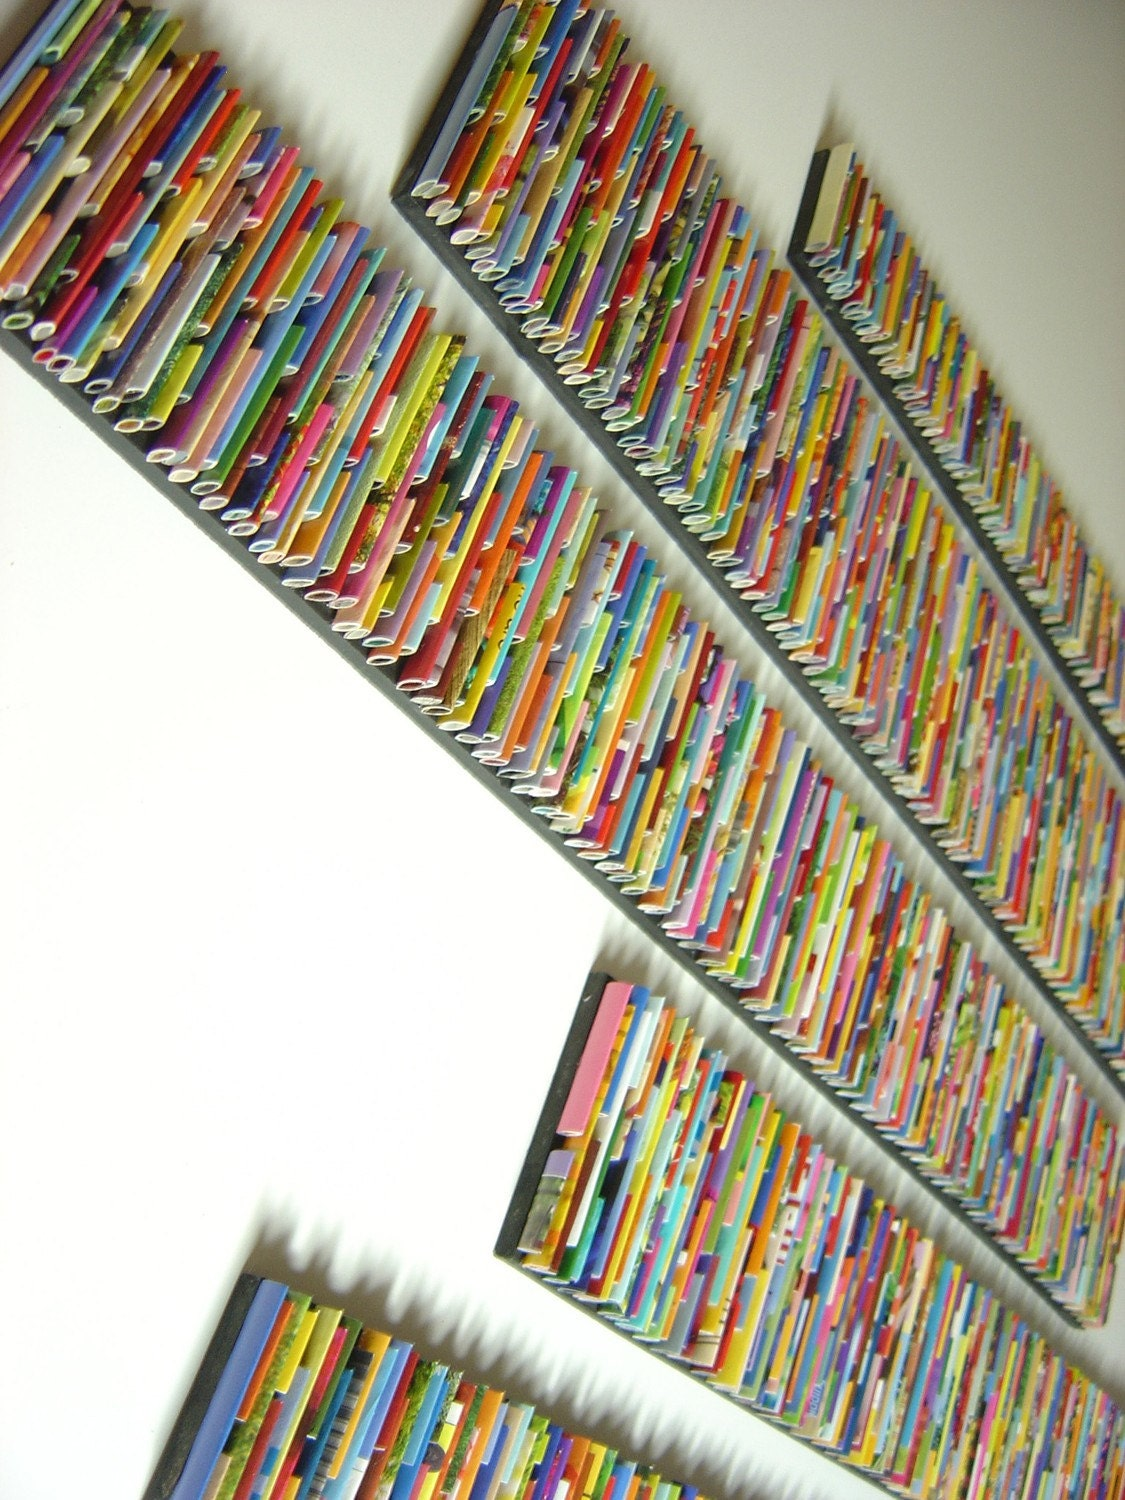 Barcode wall art made from recycled magazines colorful art Wall art paper designs